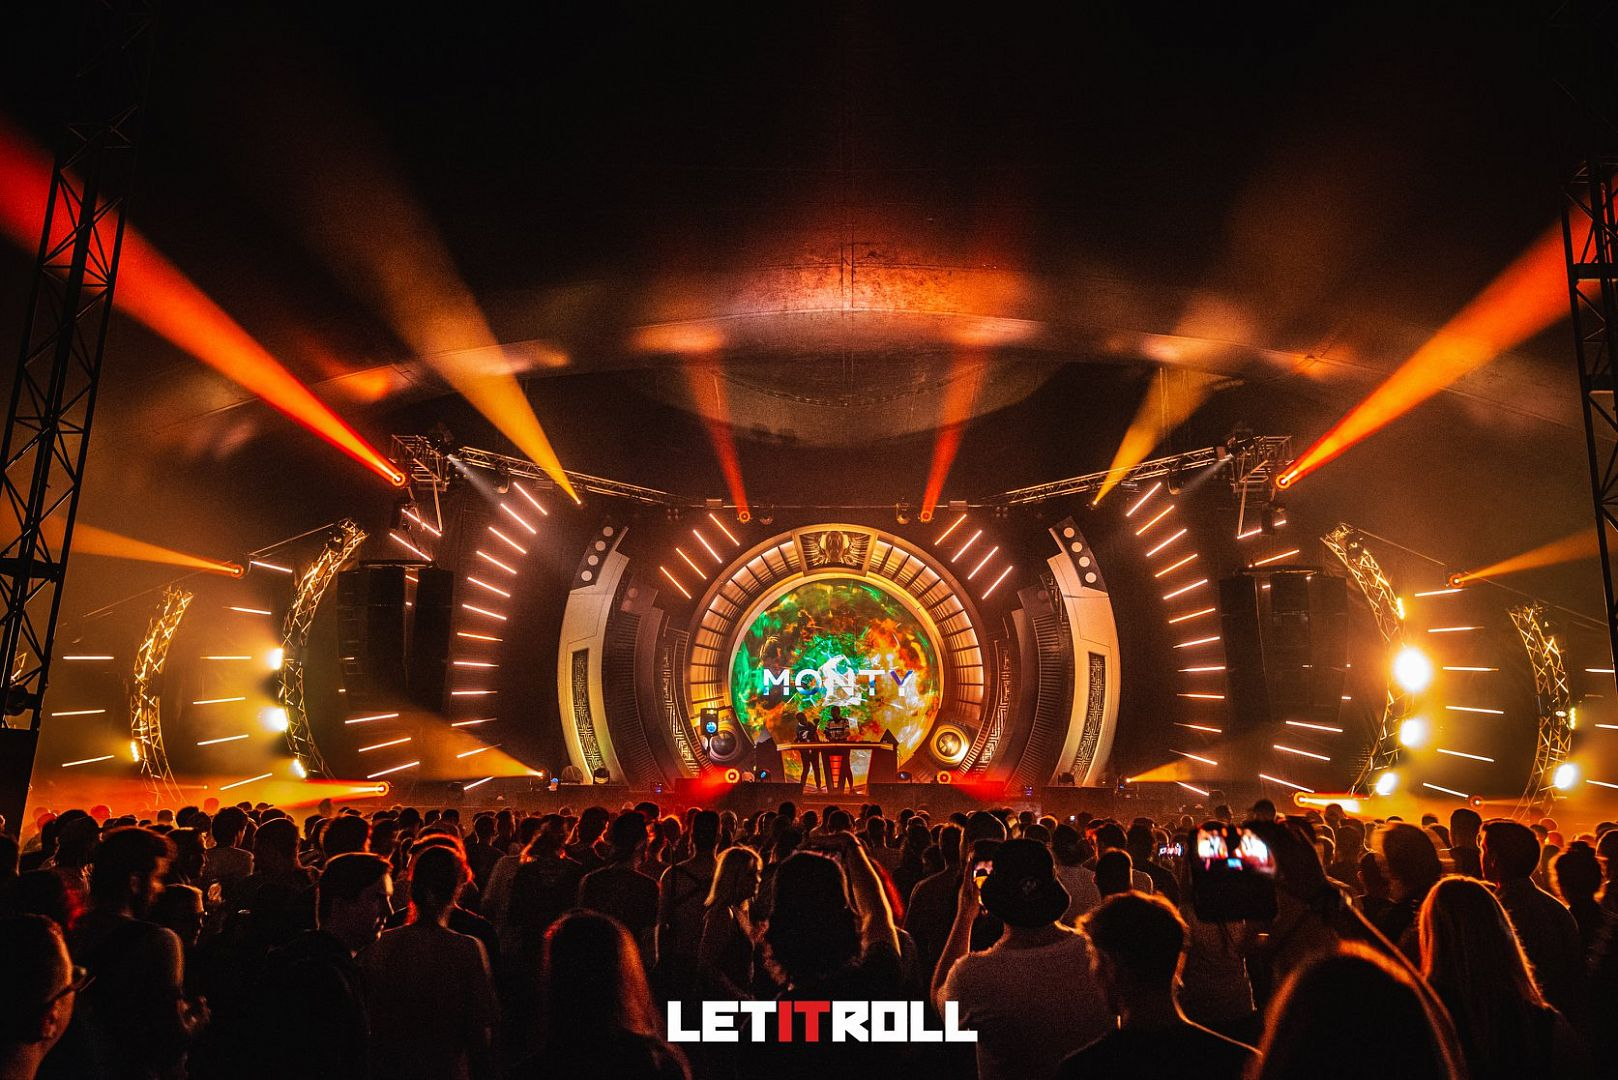 Let it roll 2019